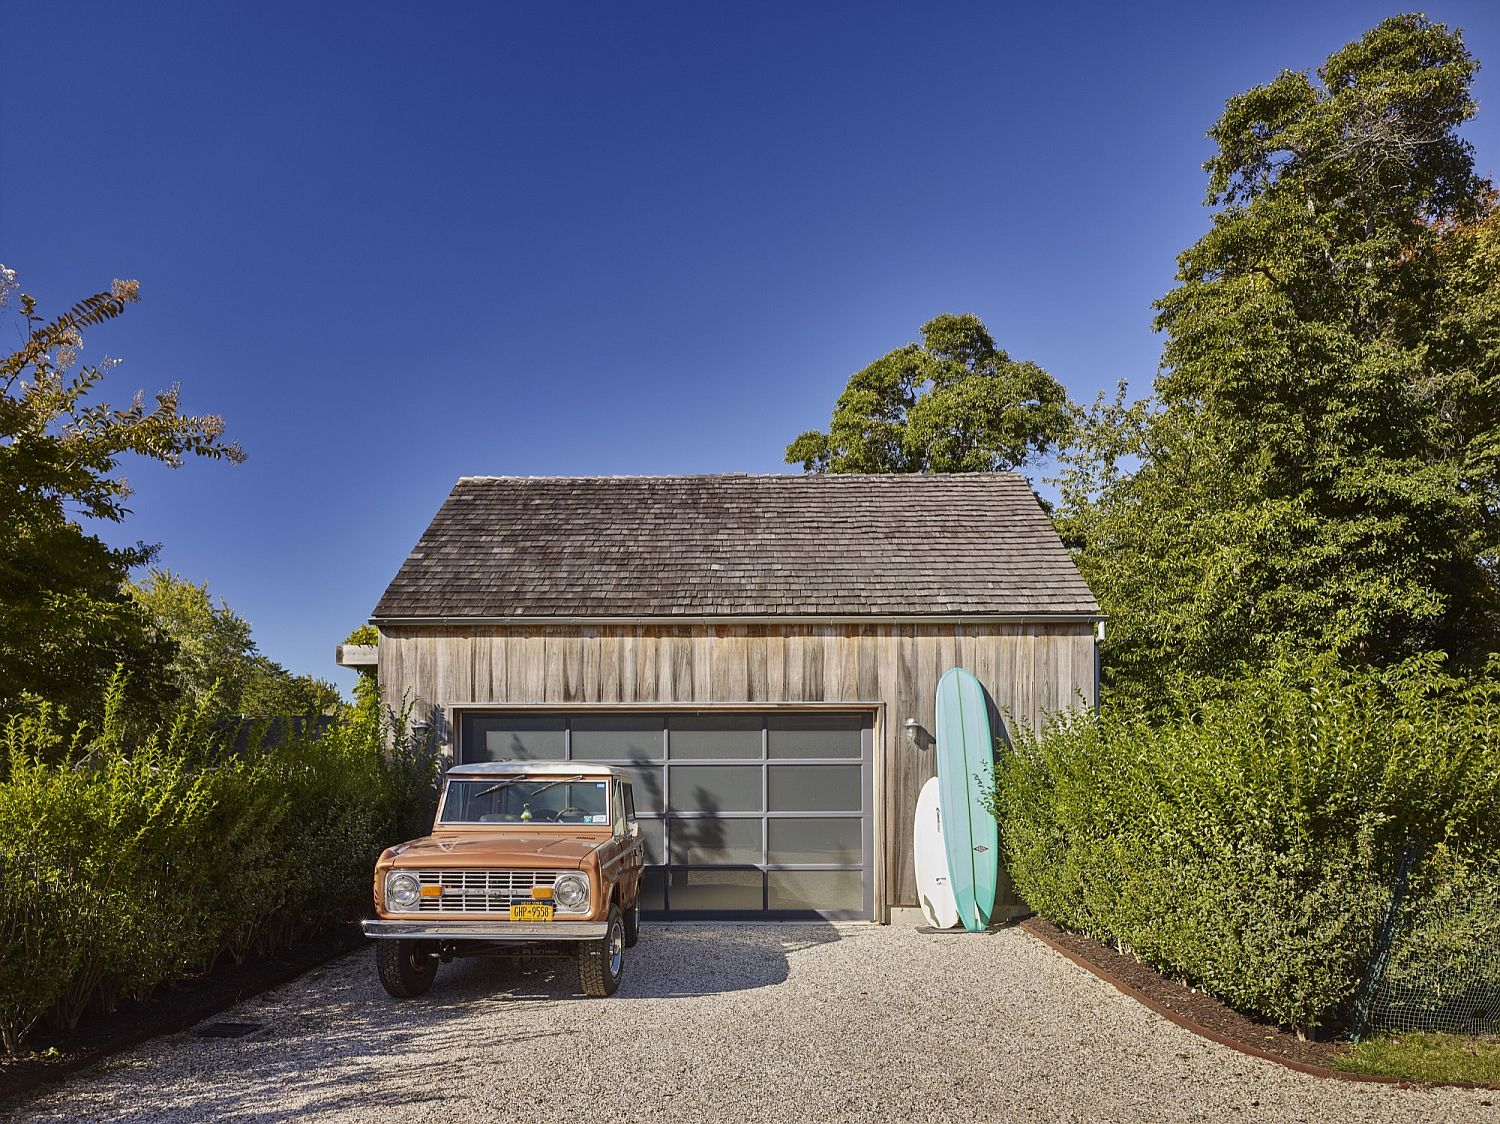 Entry to the pool house with a touch of beach style charm